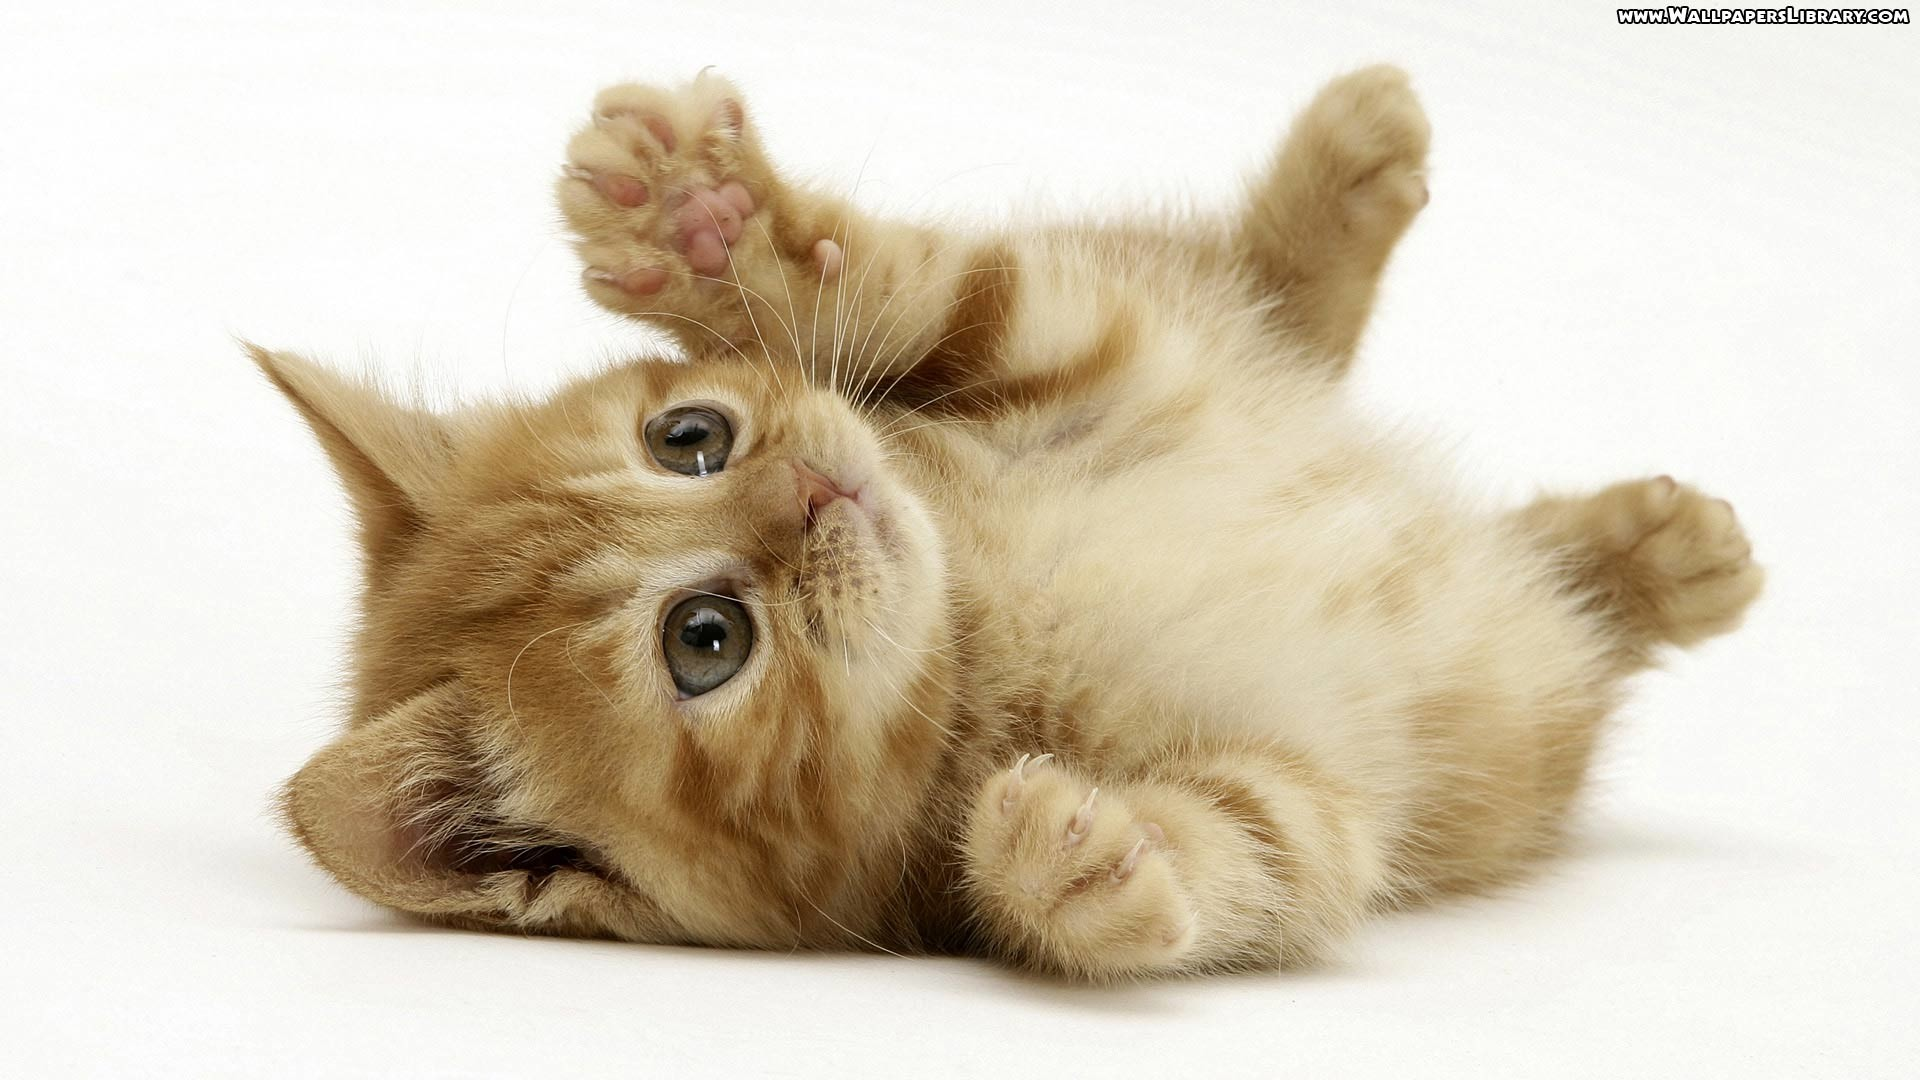 1920x1080 Cute Kittens Wallpapers 1080p